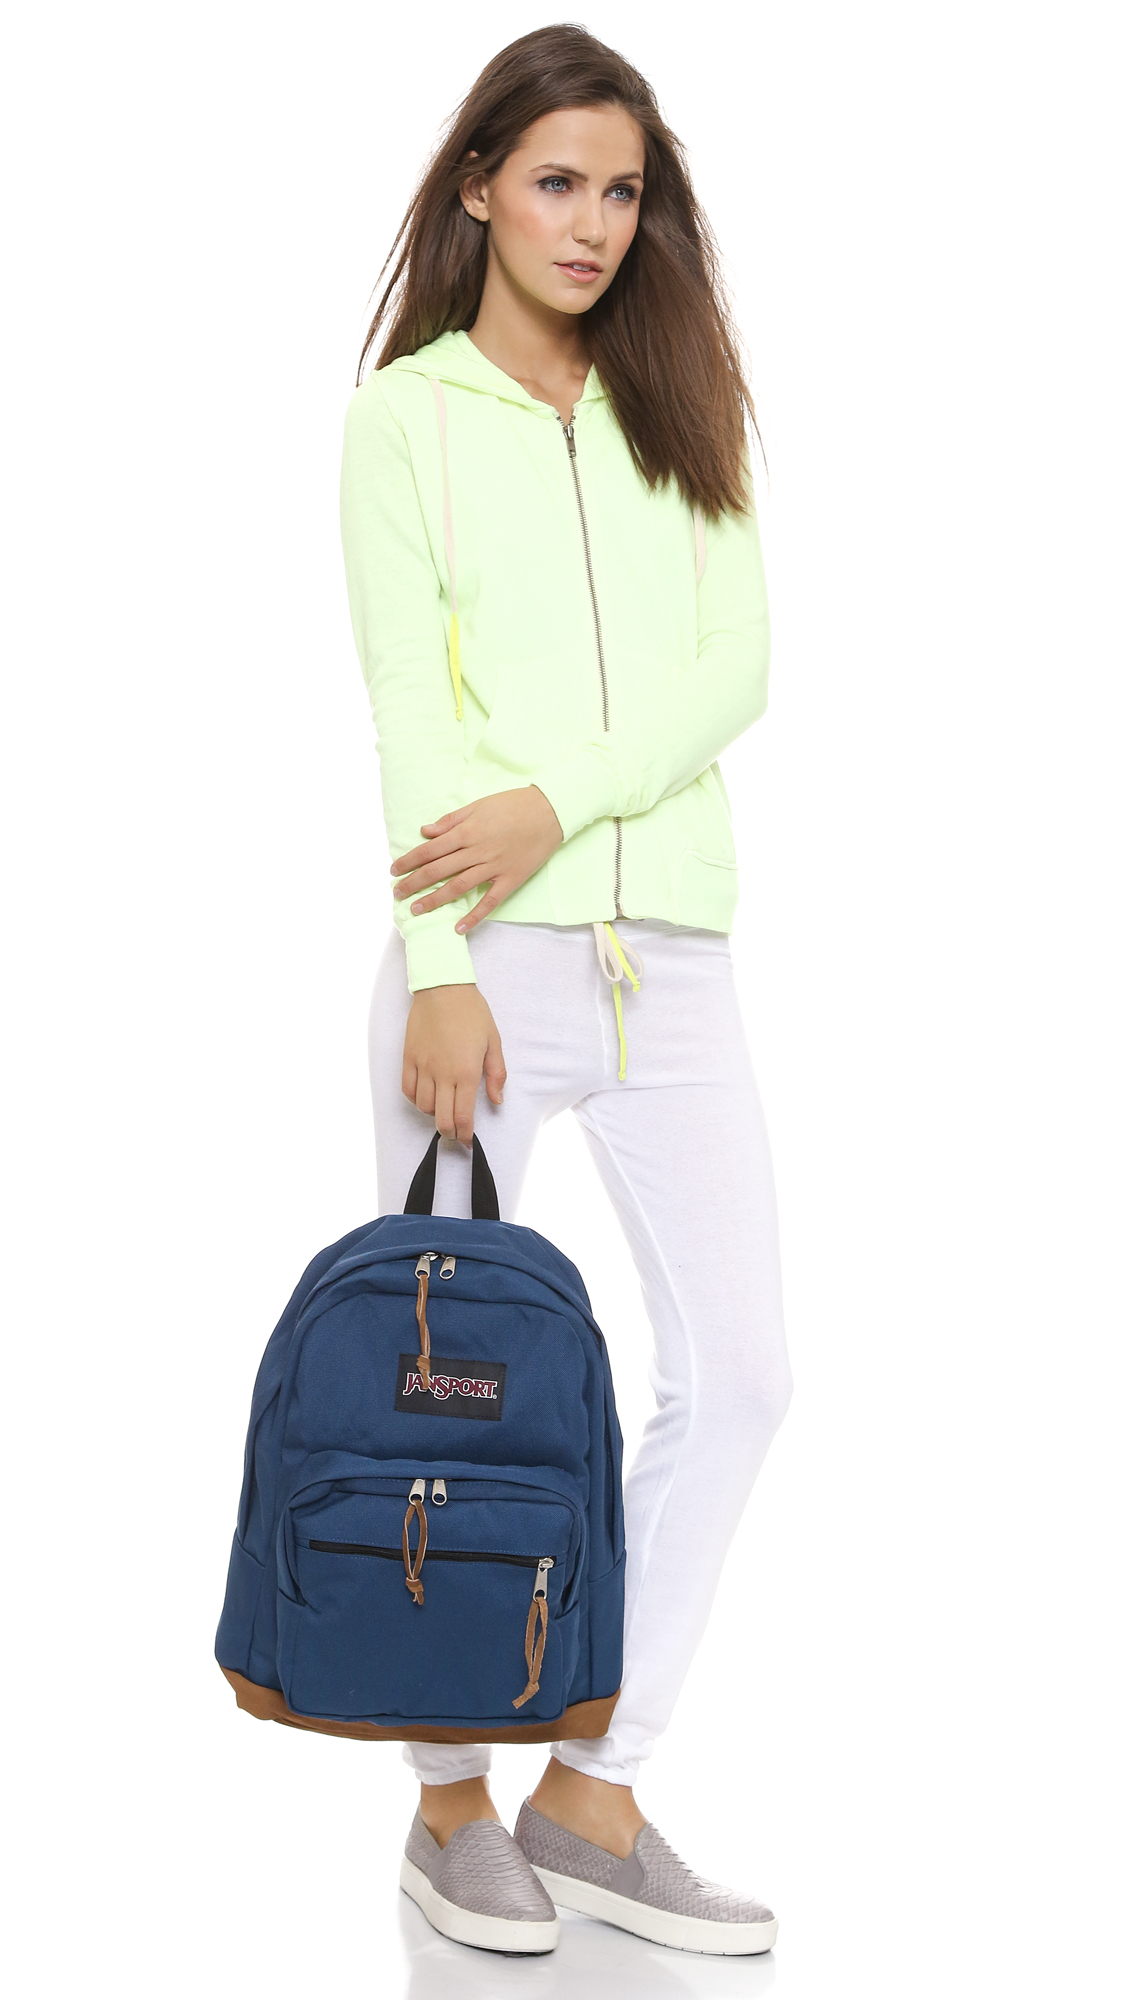 Jansport Classic Right Pack Backpack - Navy in Blue - Lyst f271ae8919